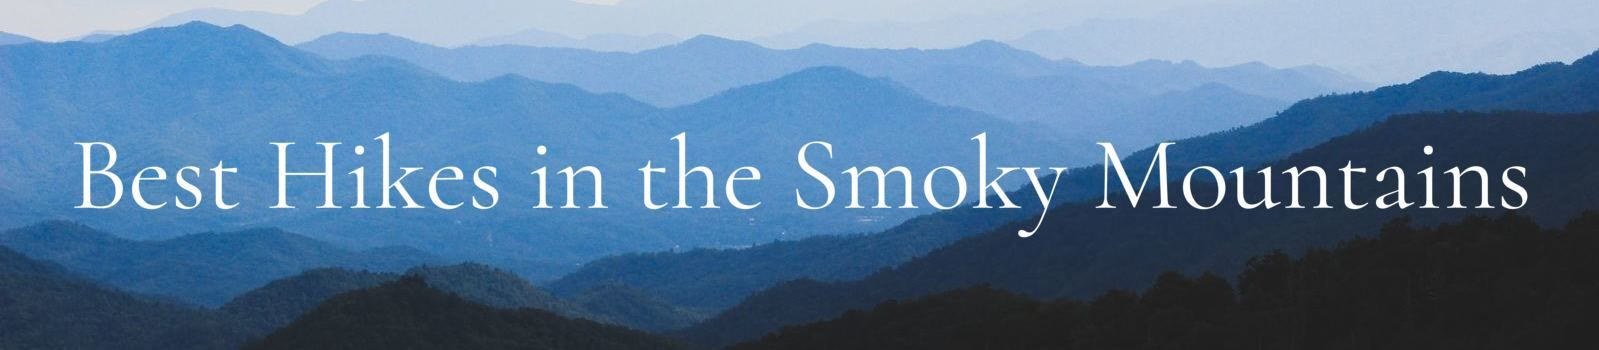 Best Hikes in the Great Smoky Mountains banner